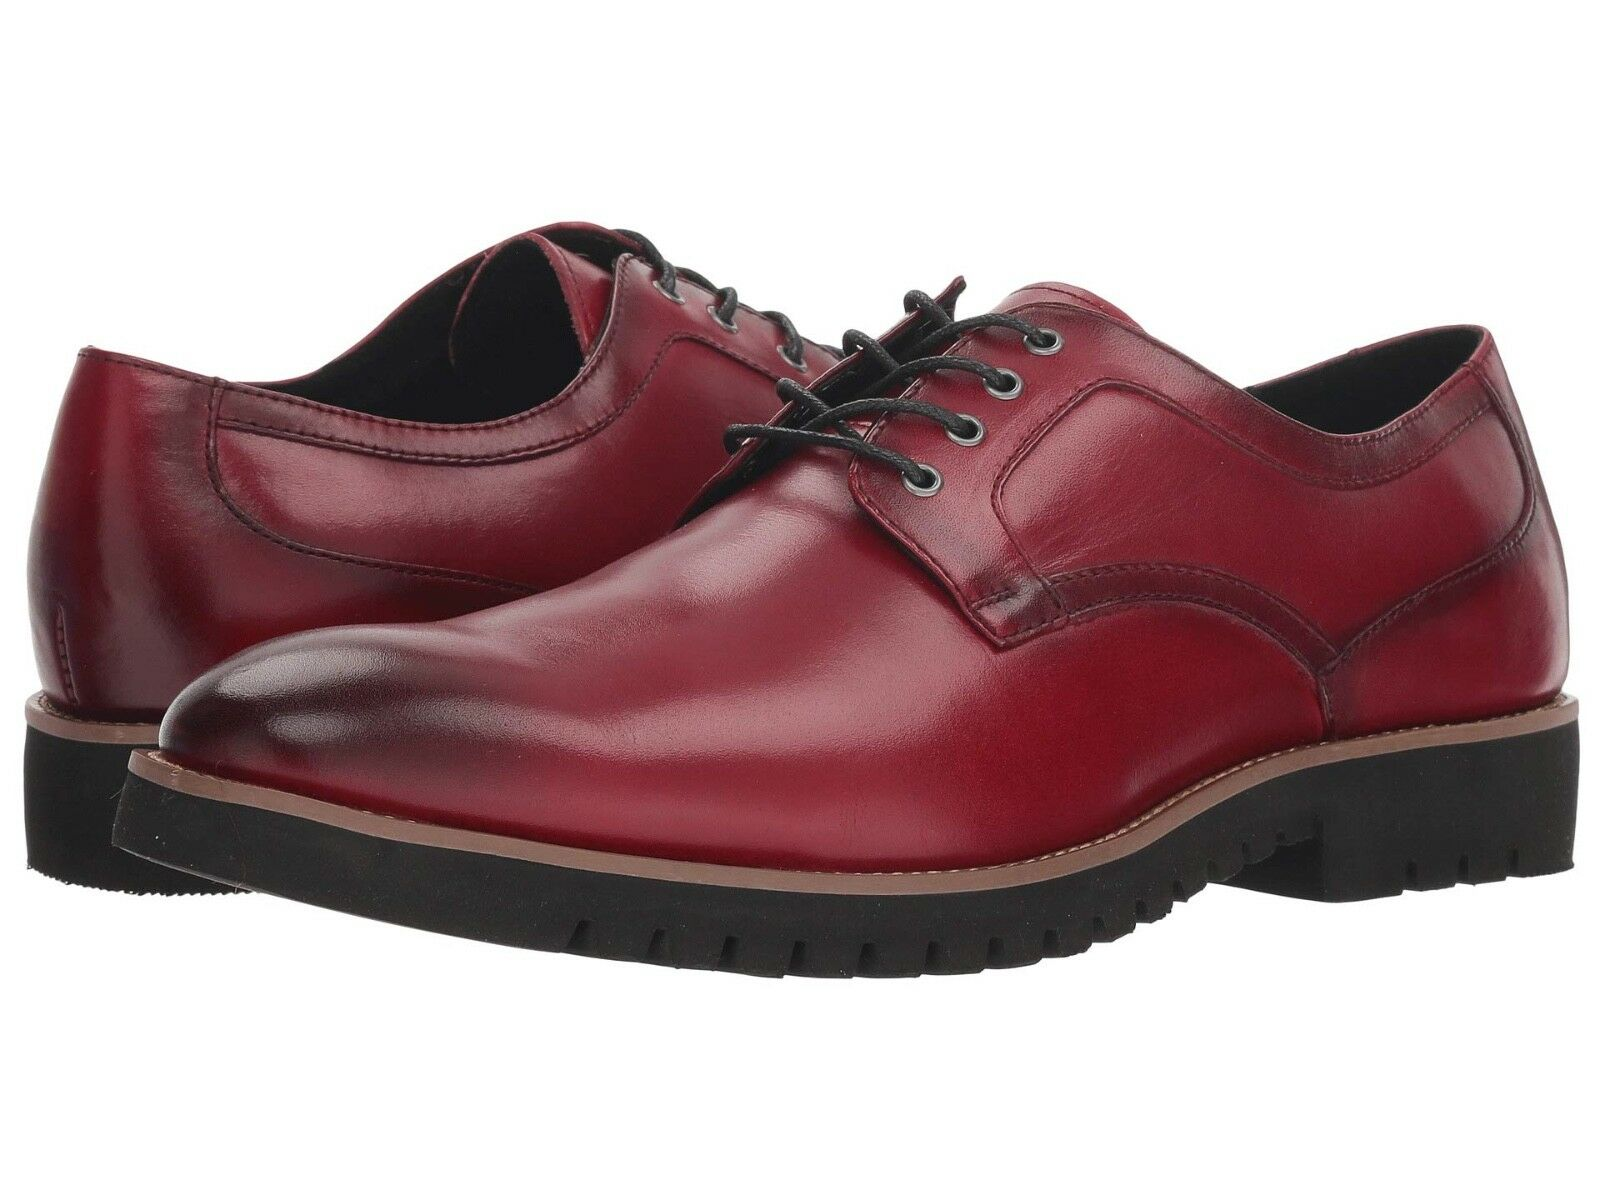 Stacy Adams Barclay Men's Oxfords Cranberry Leather Casual shoes 25230-608